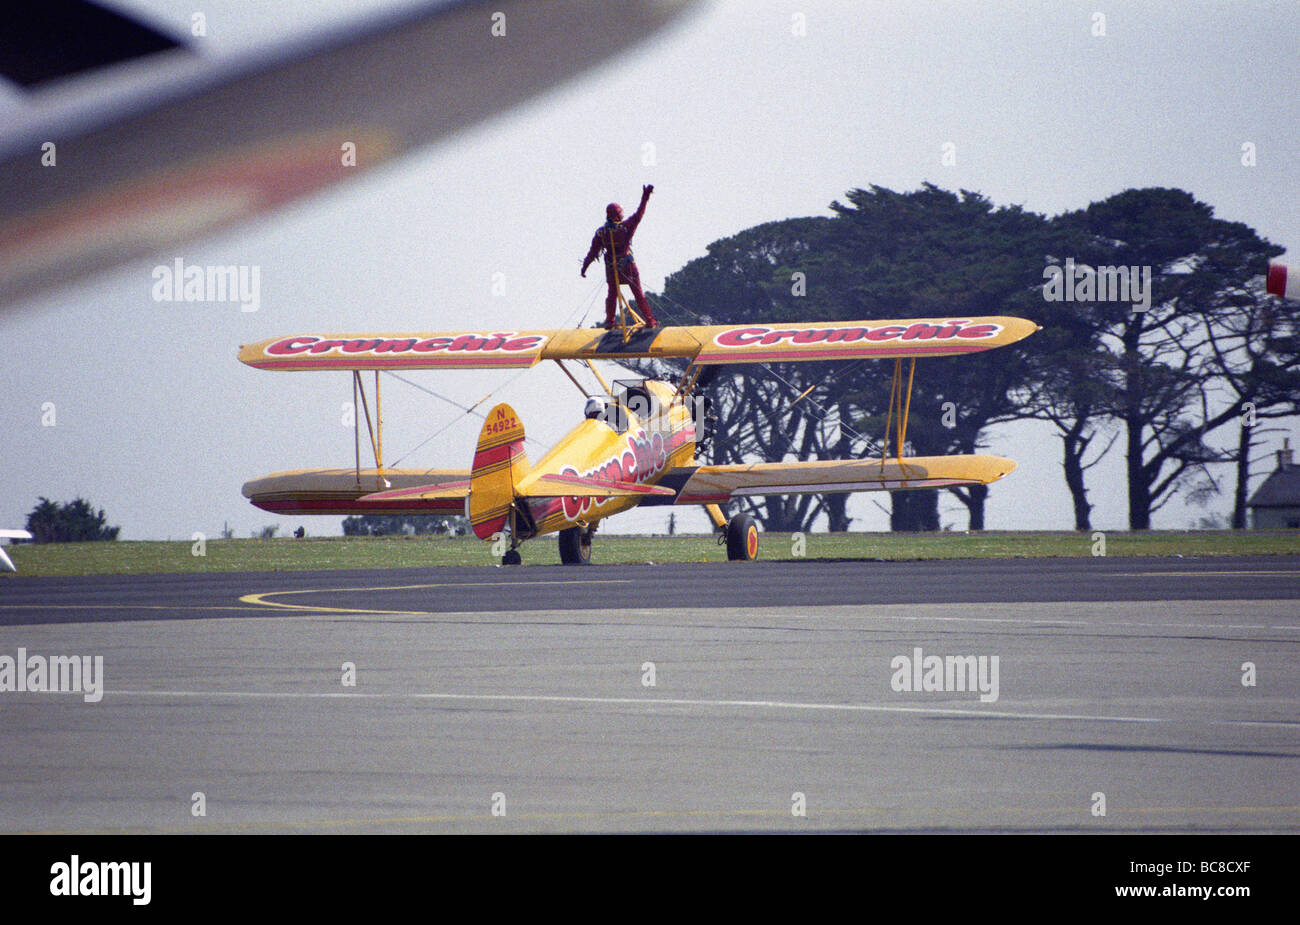 wingwalker on top of yellow Biplane about to take off on runway at airport - Stock Image